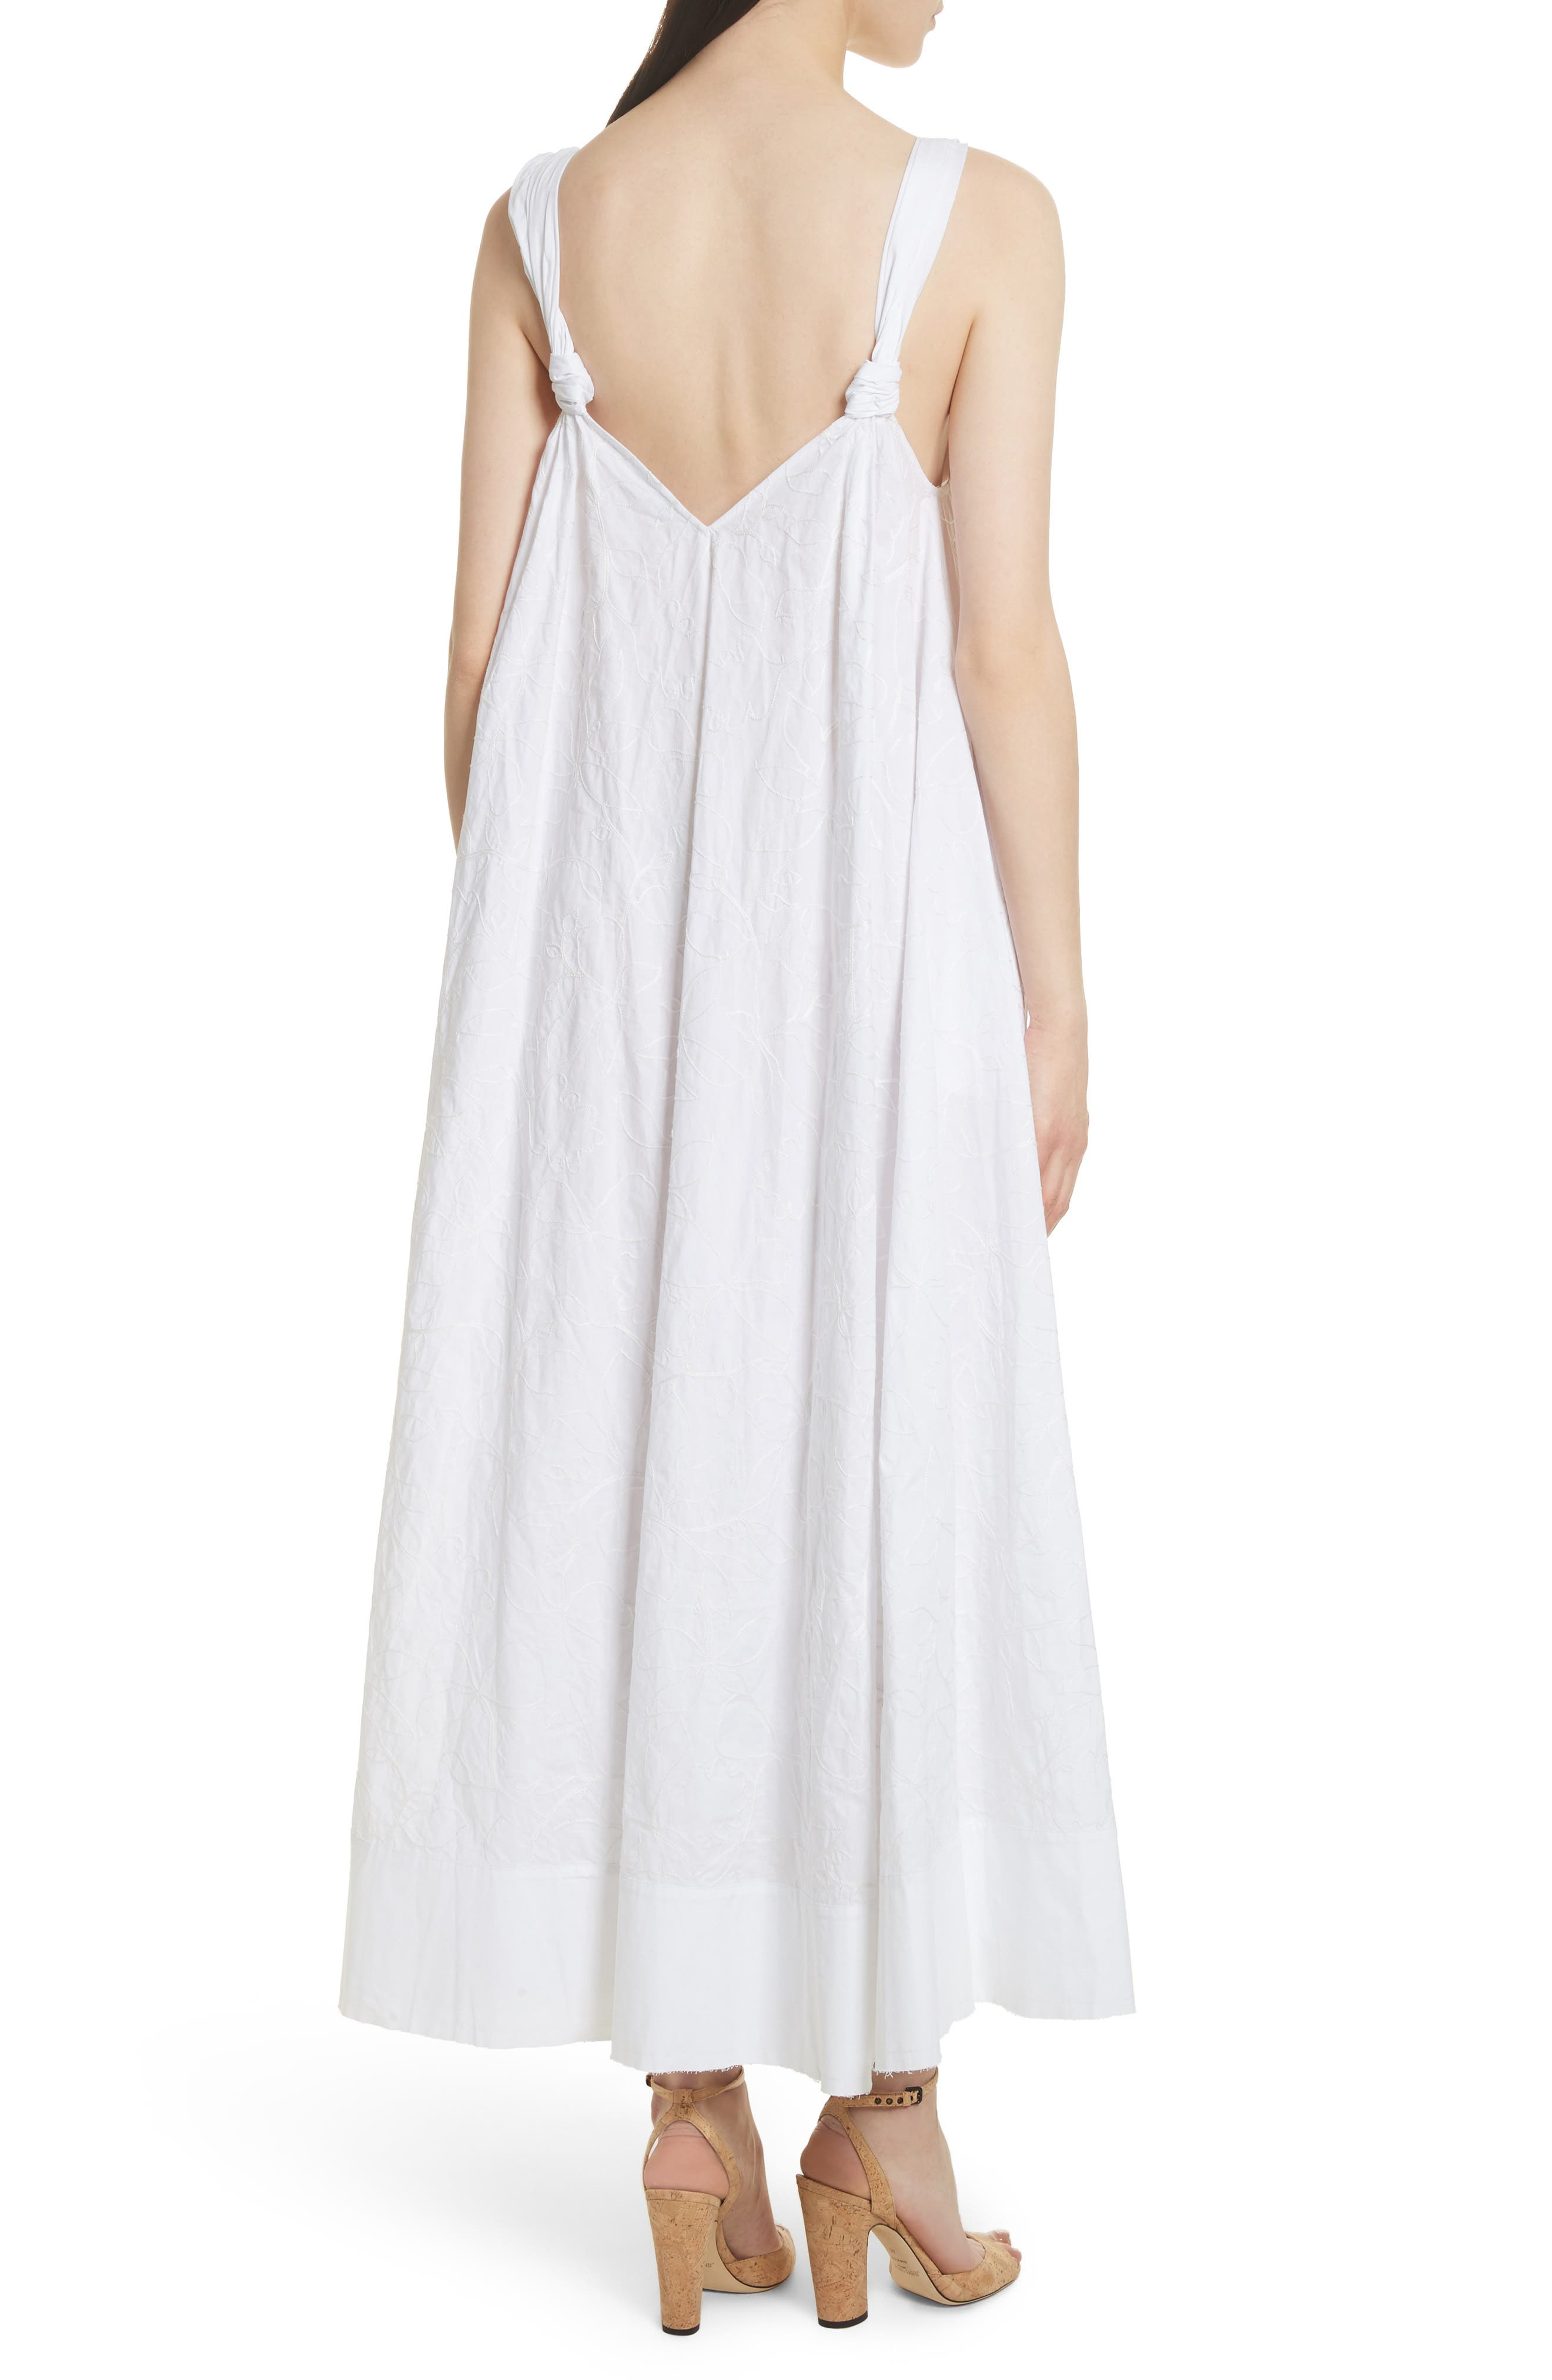 ELIZABETH AND JAMES,                             Denali Embroidered Maxi Dress,                             Alternate thumbnail 2, color,                             100